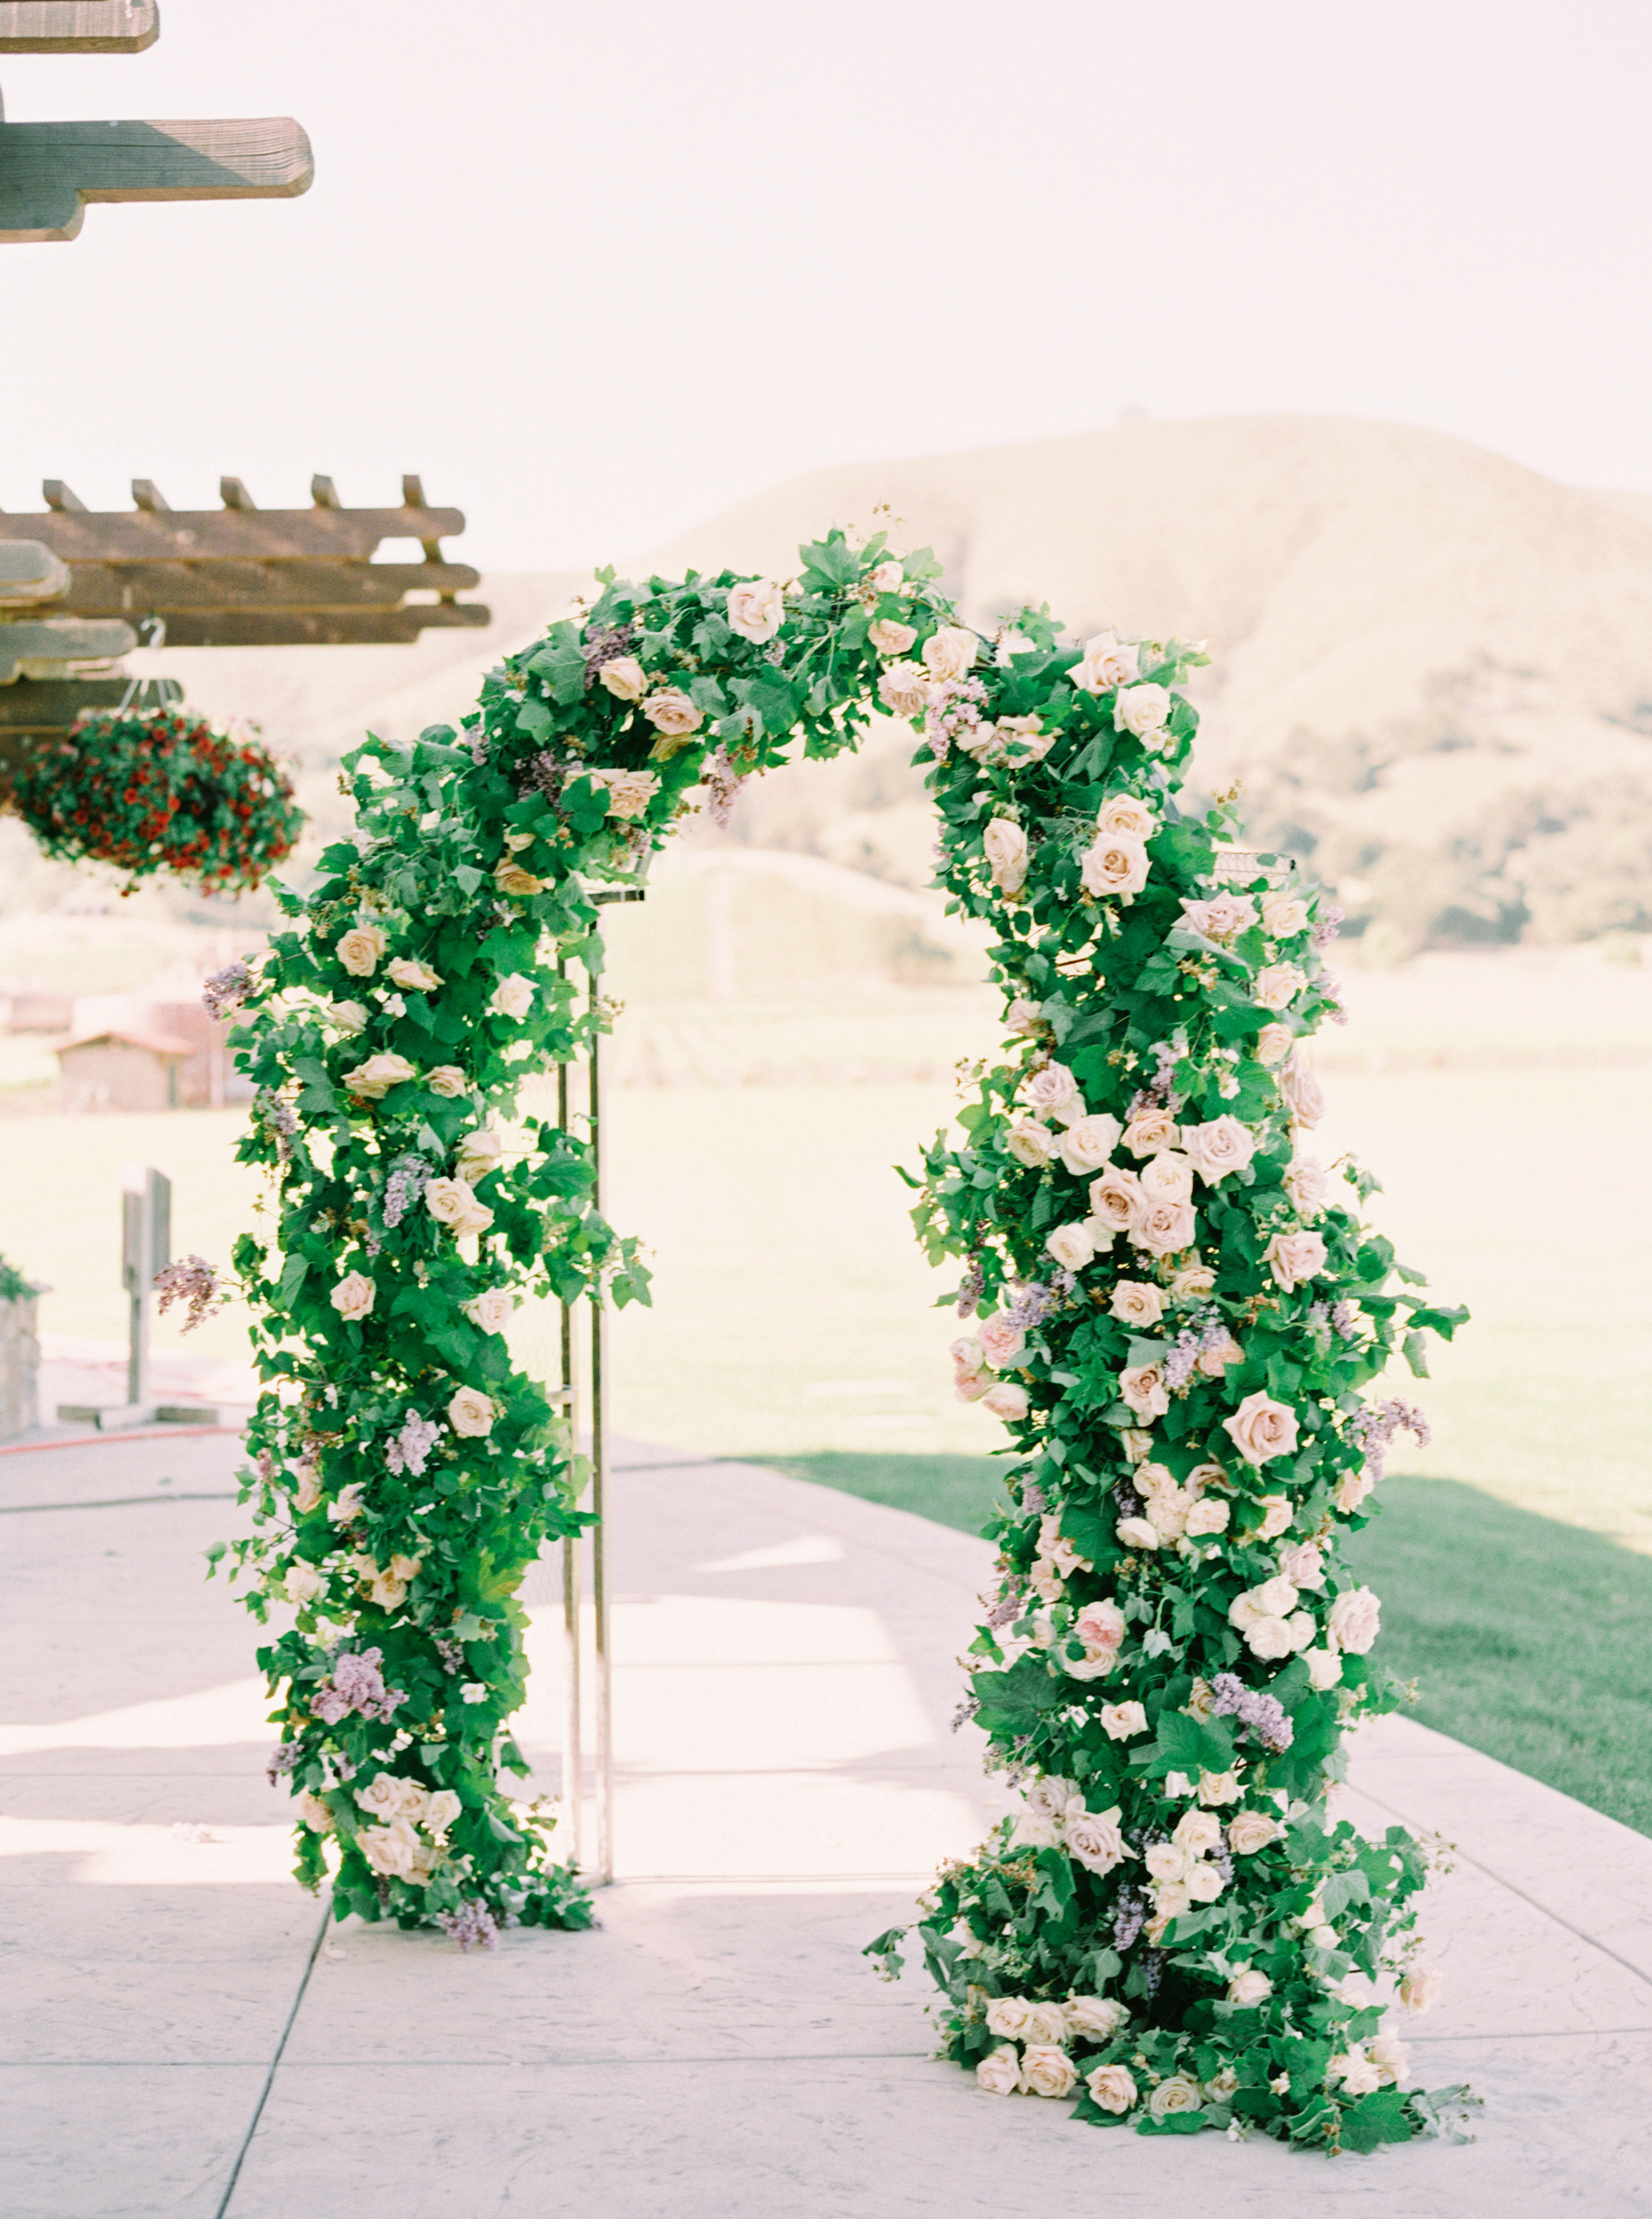 This-Love-of-Yours-Kirigin-Cellars-Flower-Arch-Styled-Shoot-115.jpg